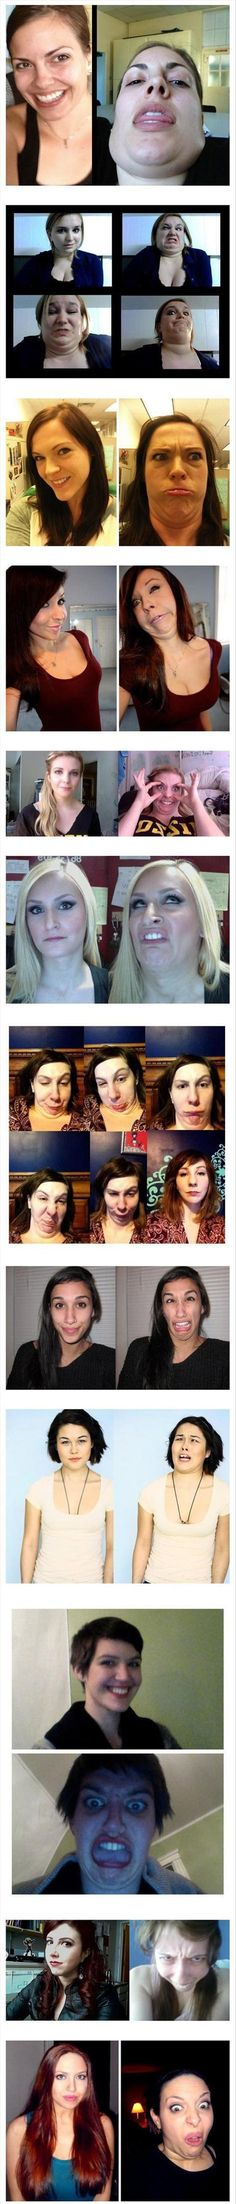 The Many Faces Of Women – 15 Pics